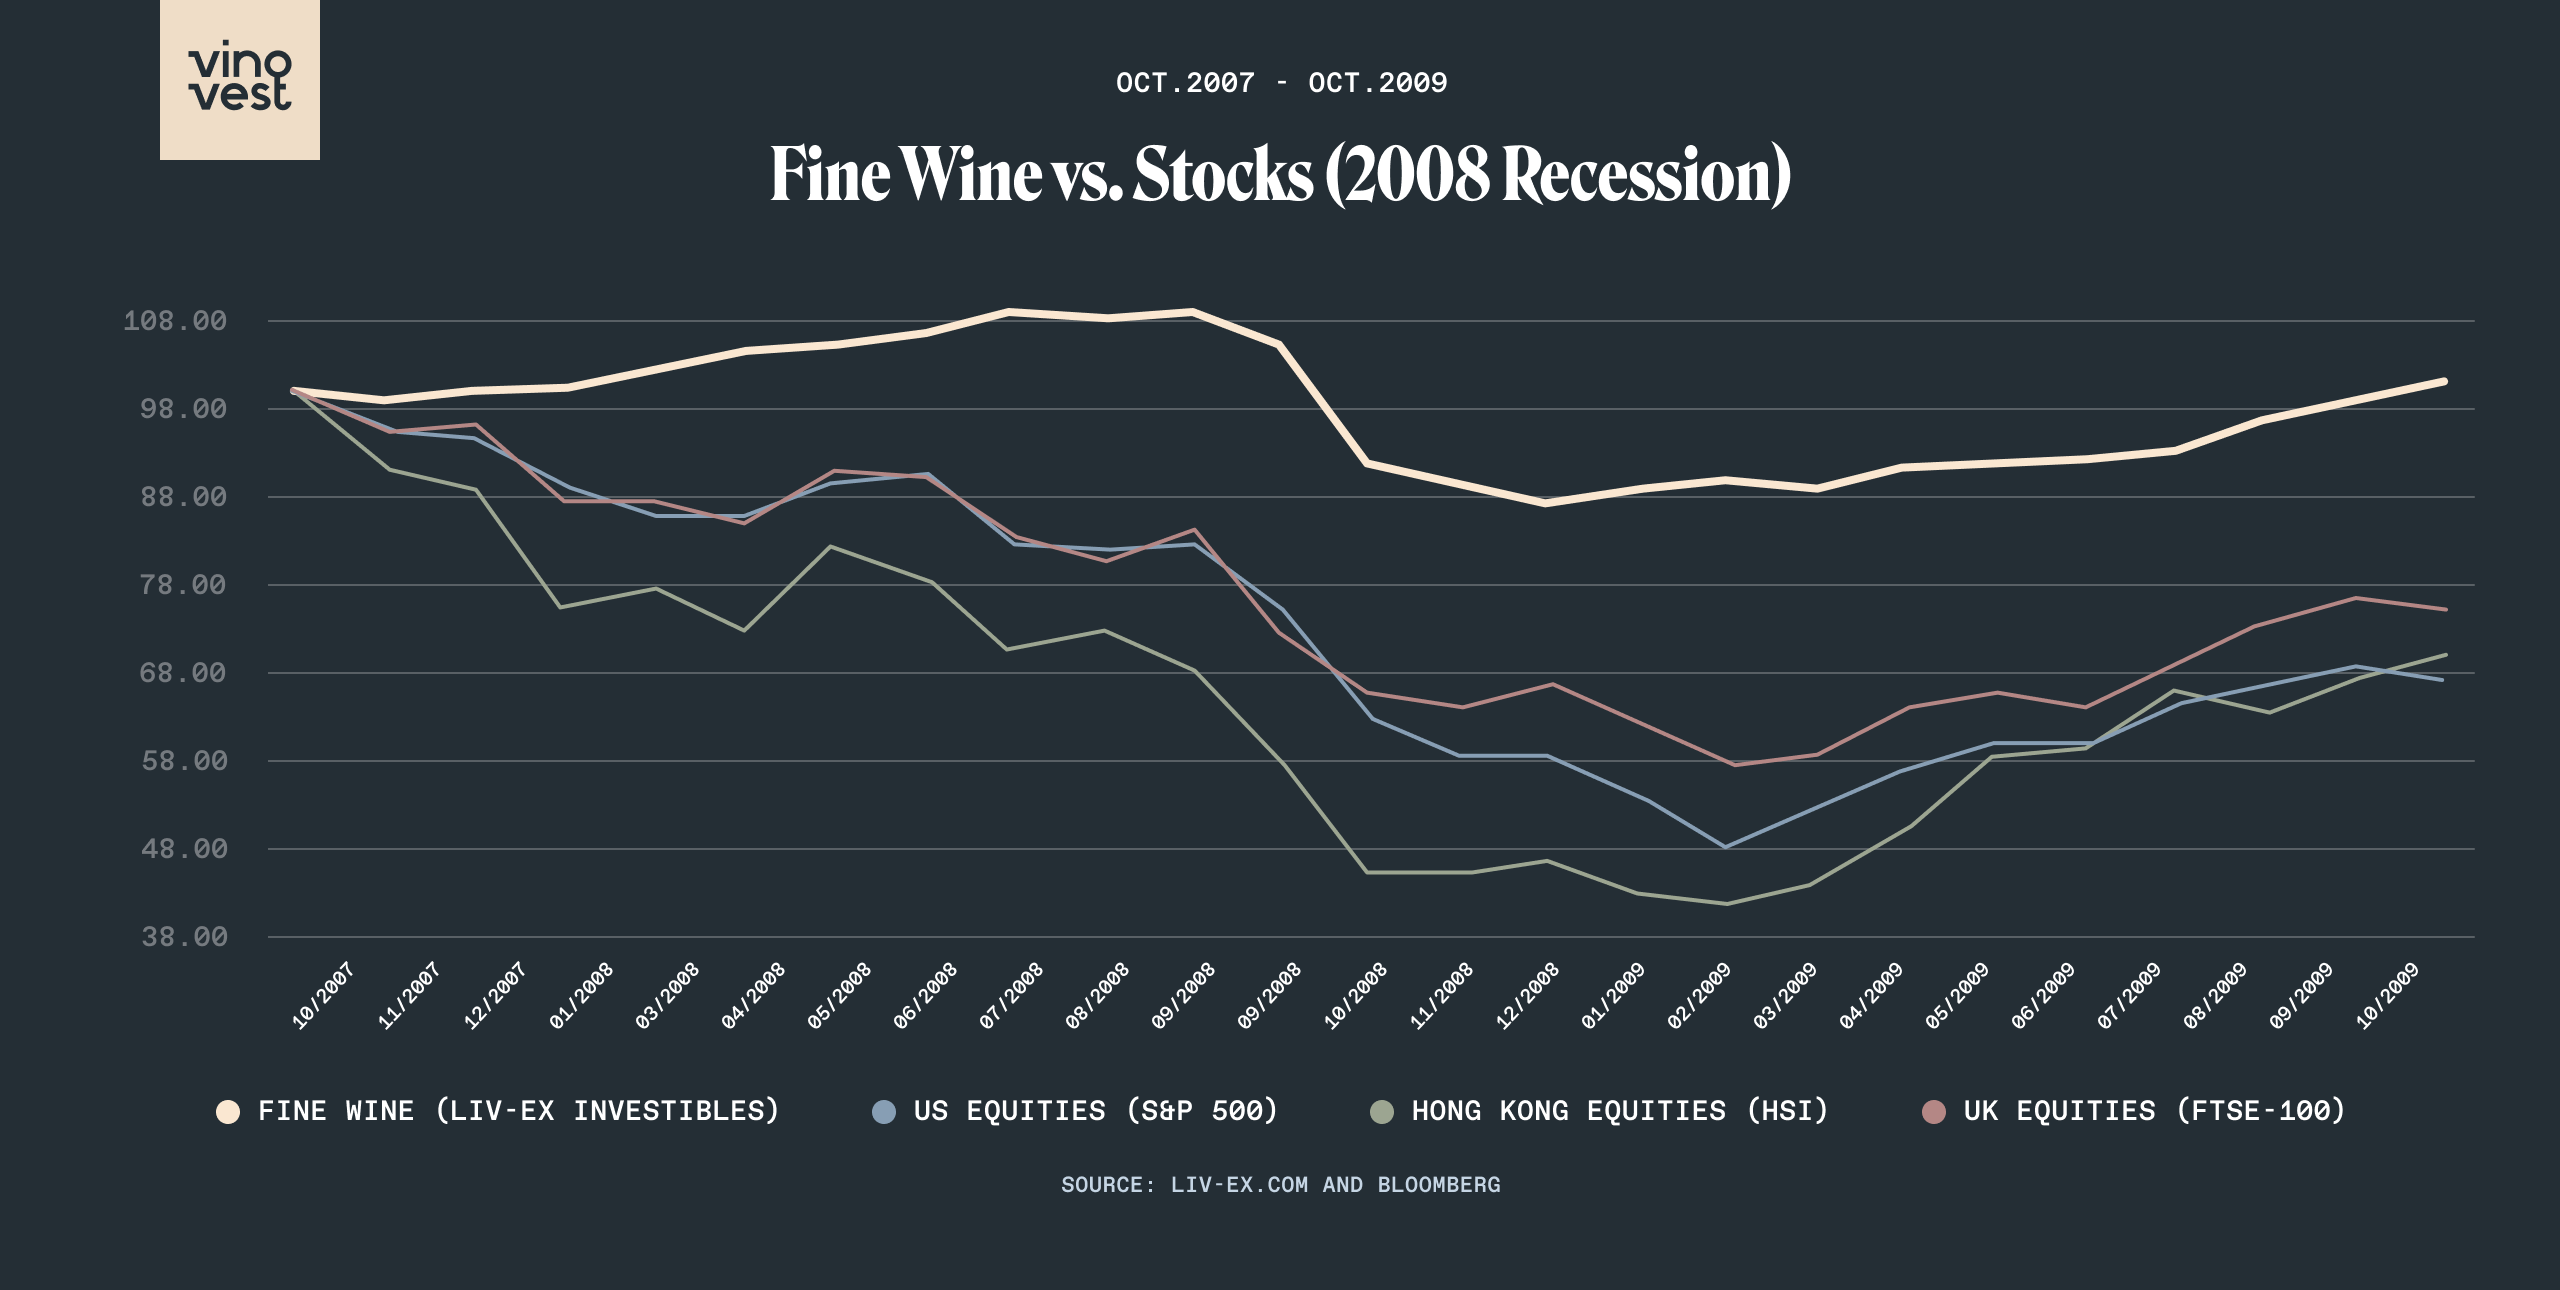 Fine Wine investments versus stocks since 2008